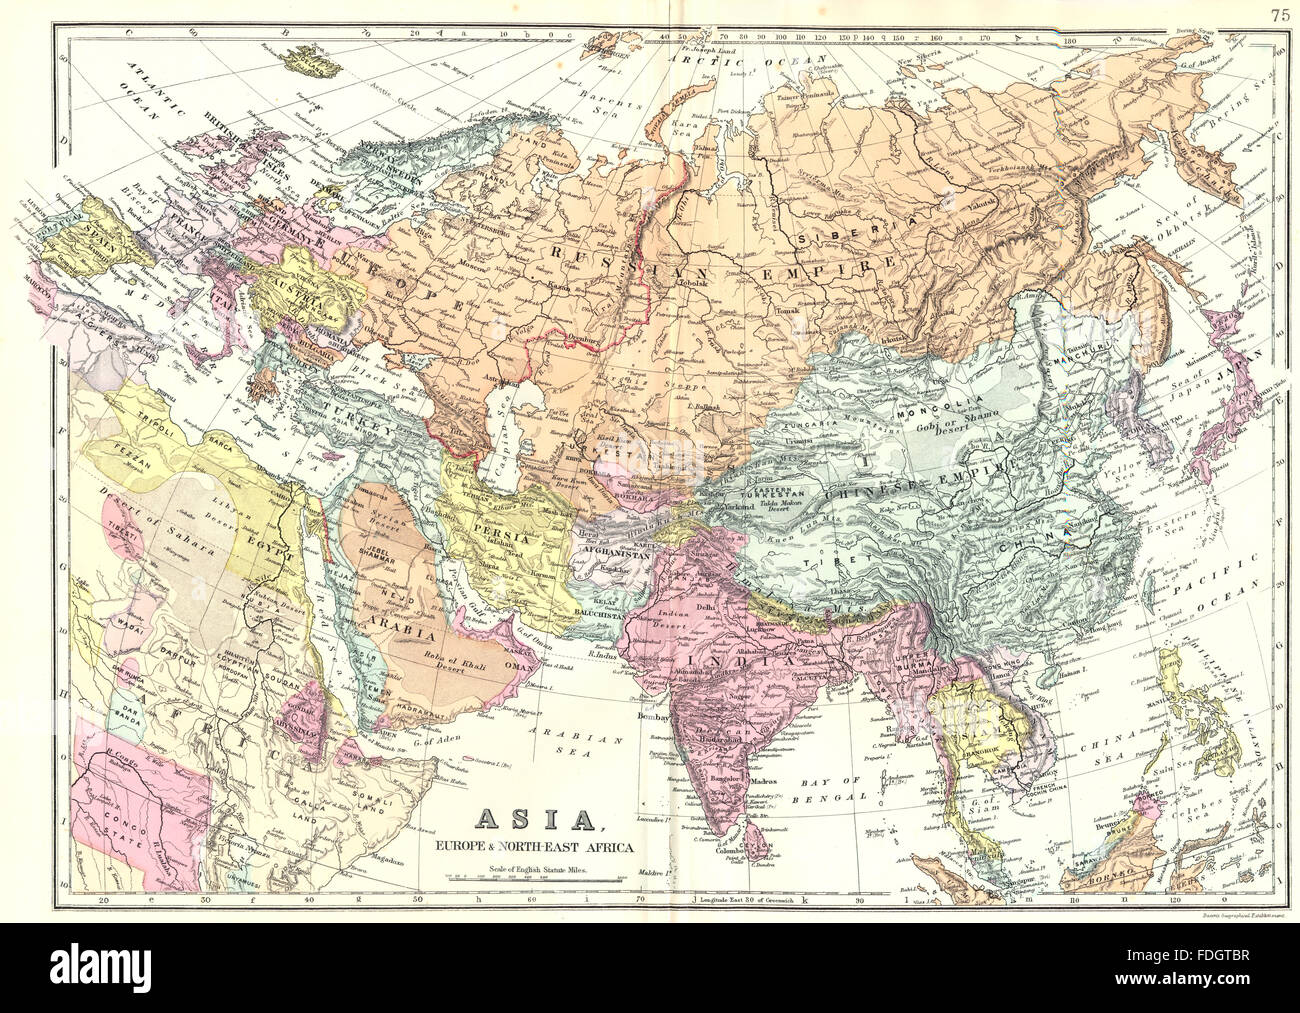 asia asiaeurope north east africa bacon 1895 antique map